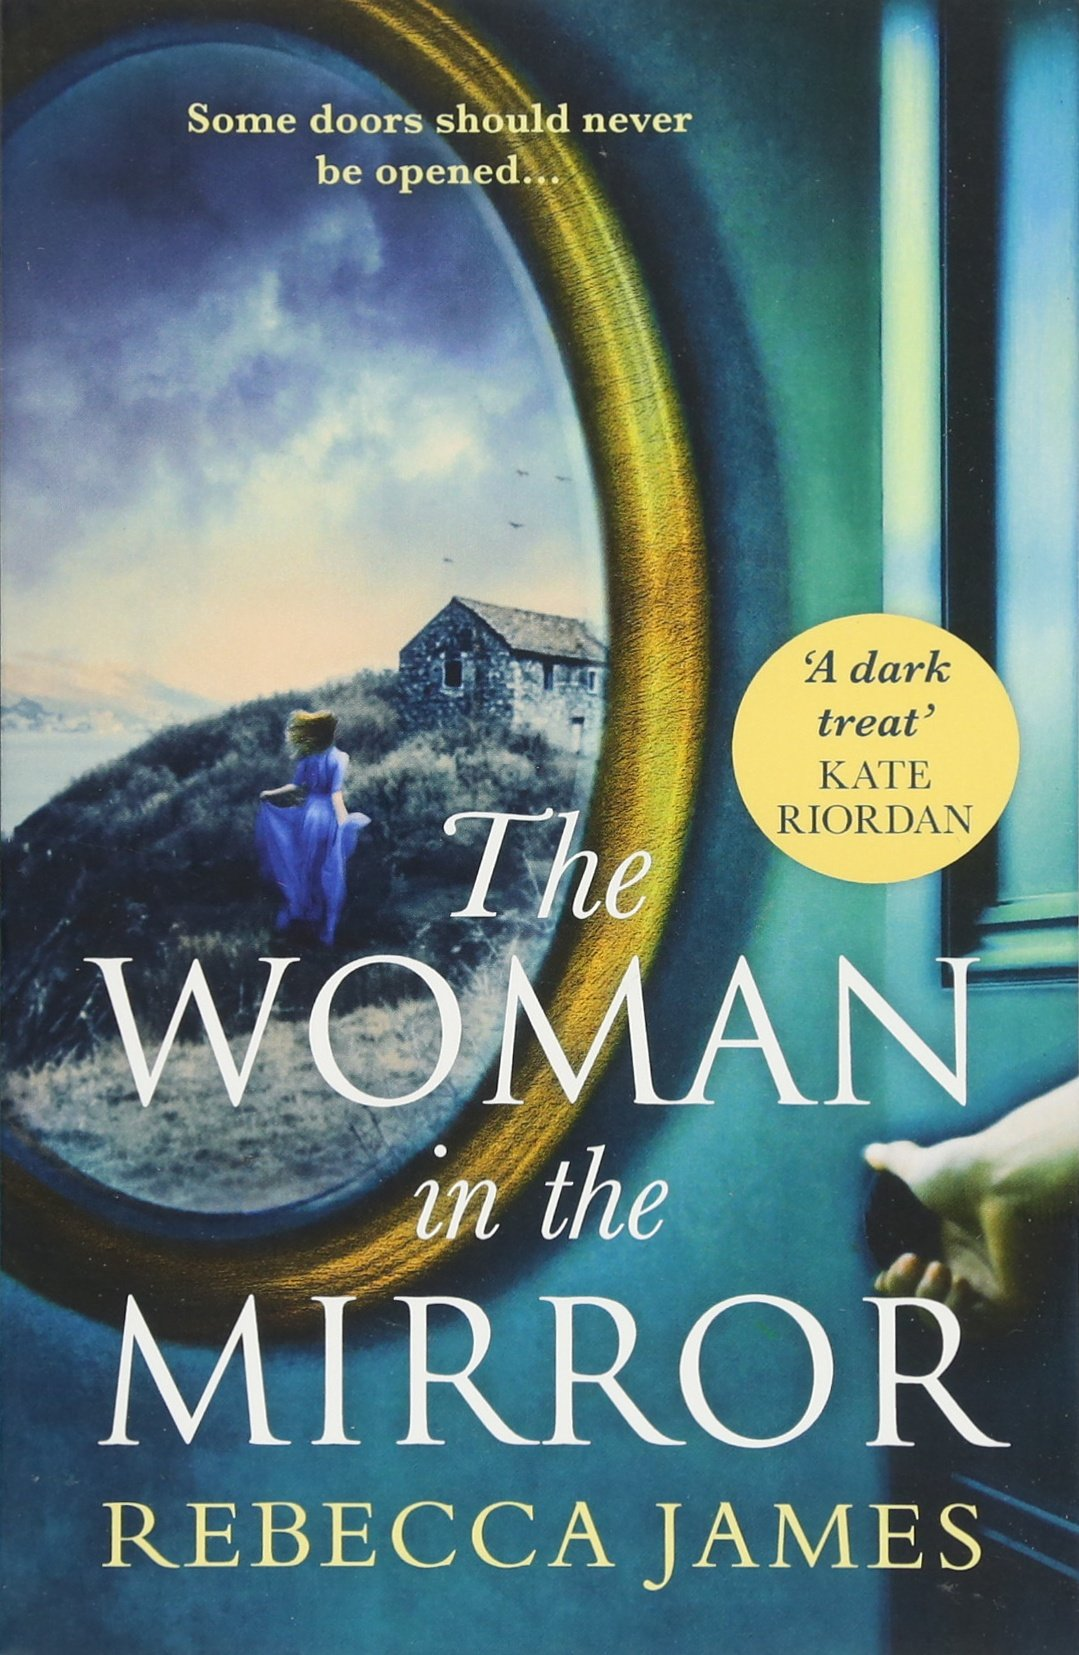 Image result for the woman in the mirror by rebecca james